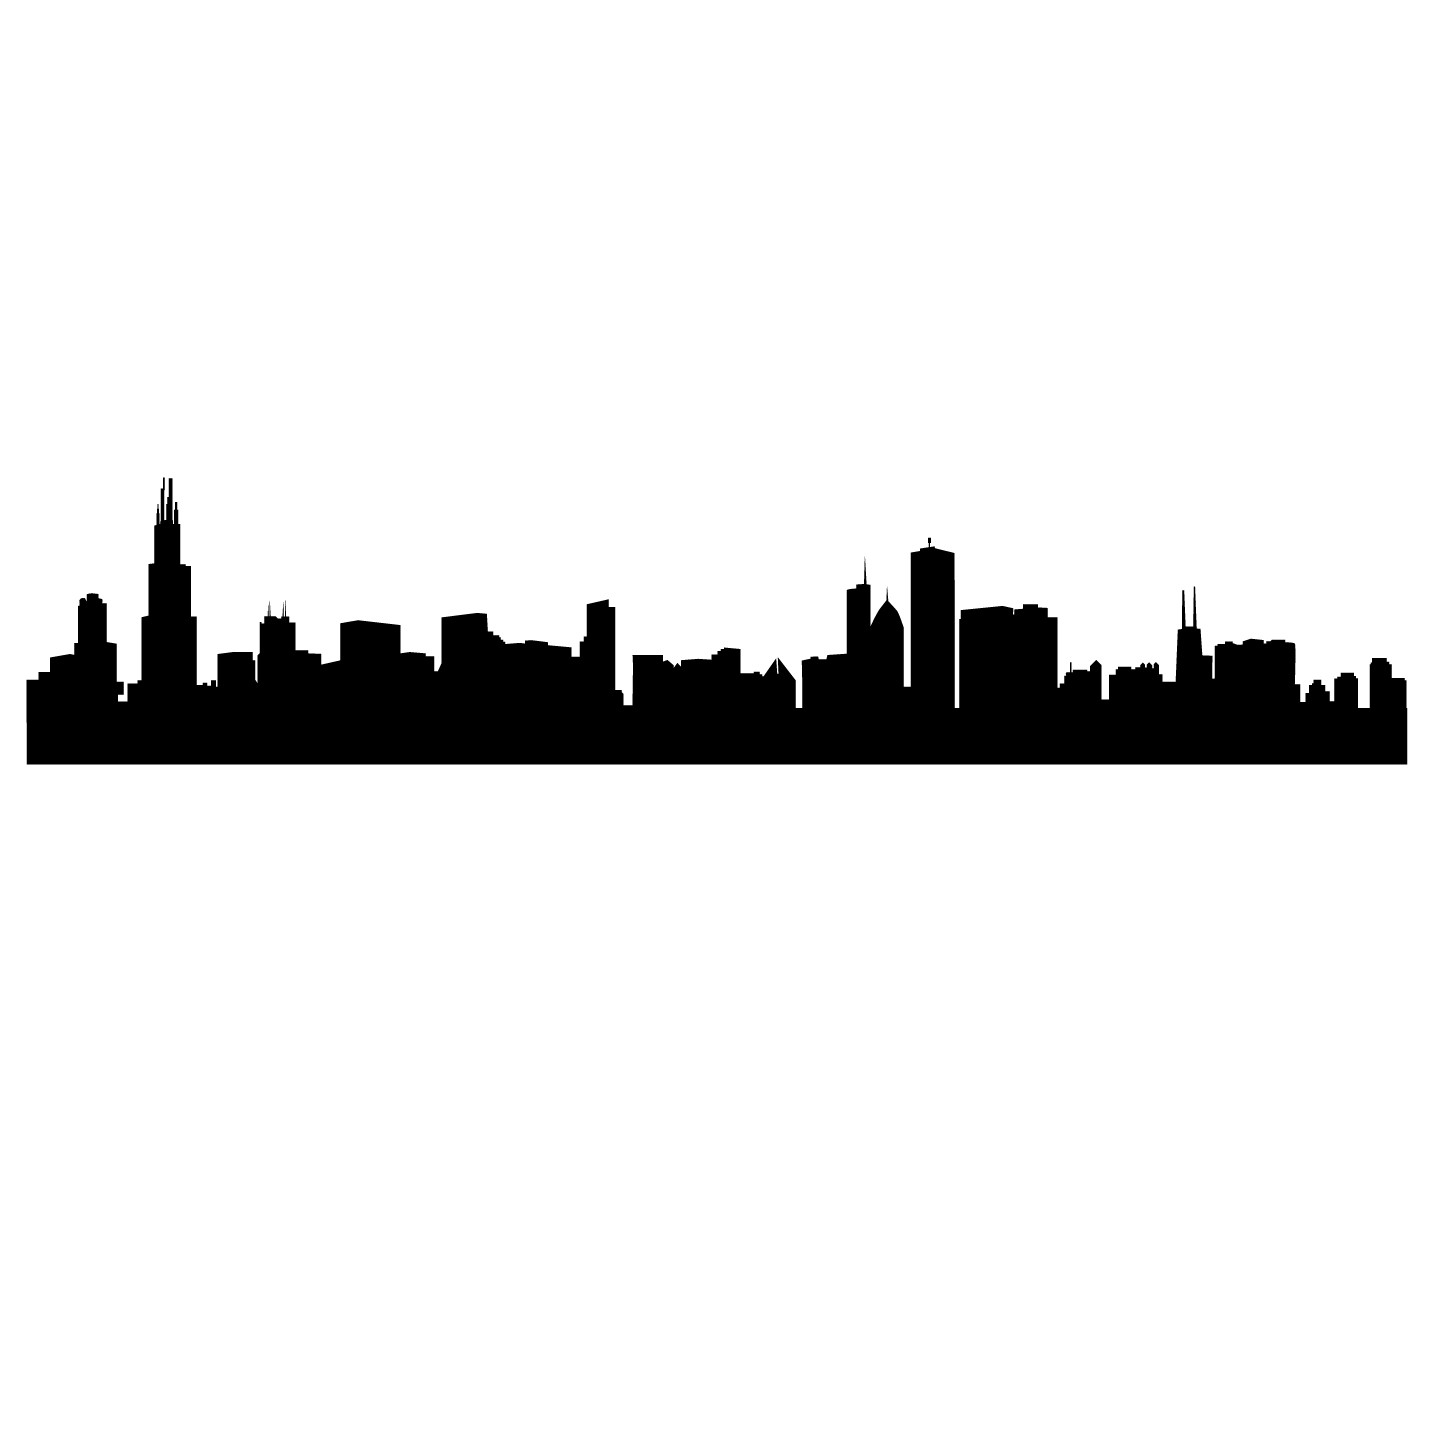 1440x1440 Chicago Skyline Art. Chicago River Skyline In Black And White